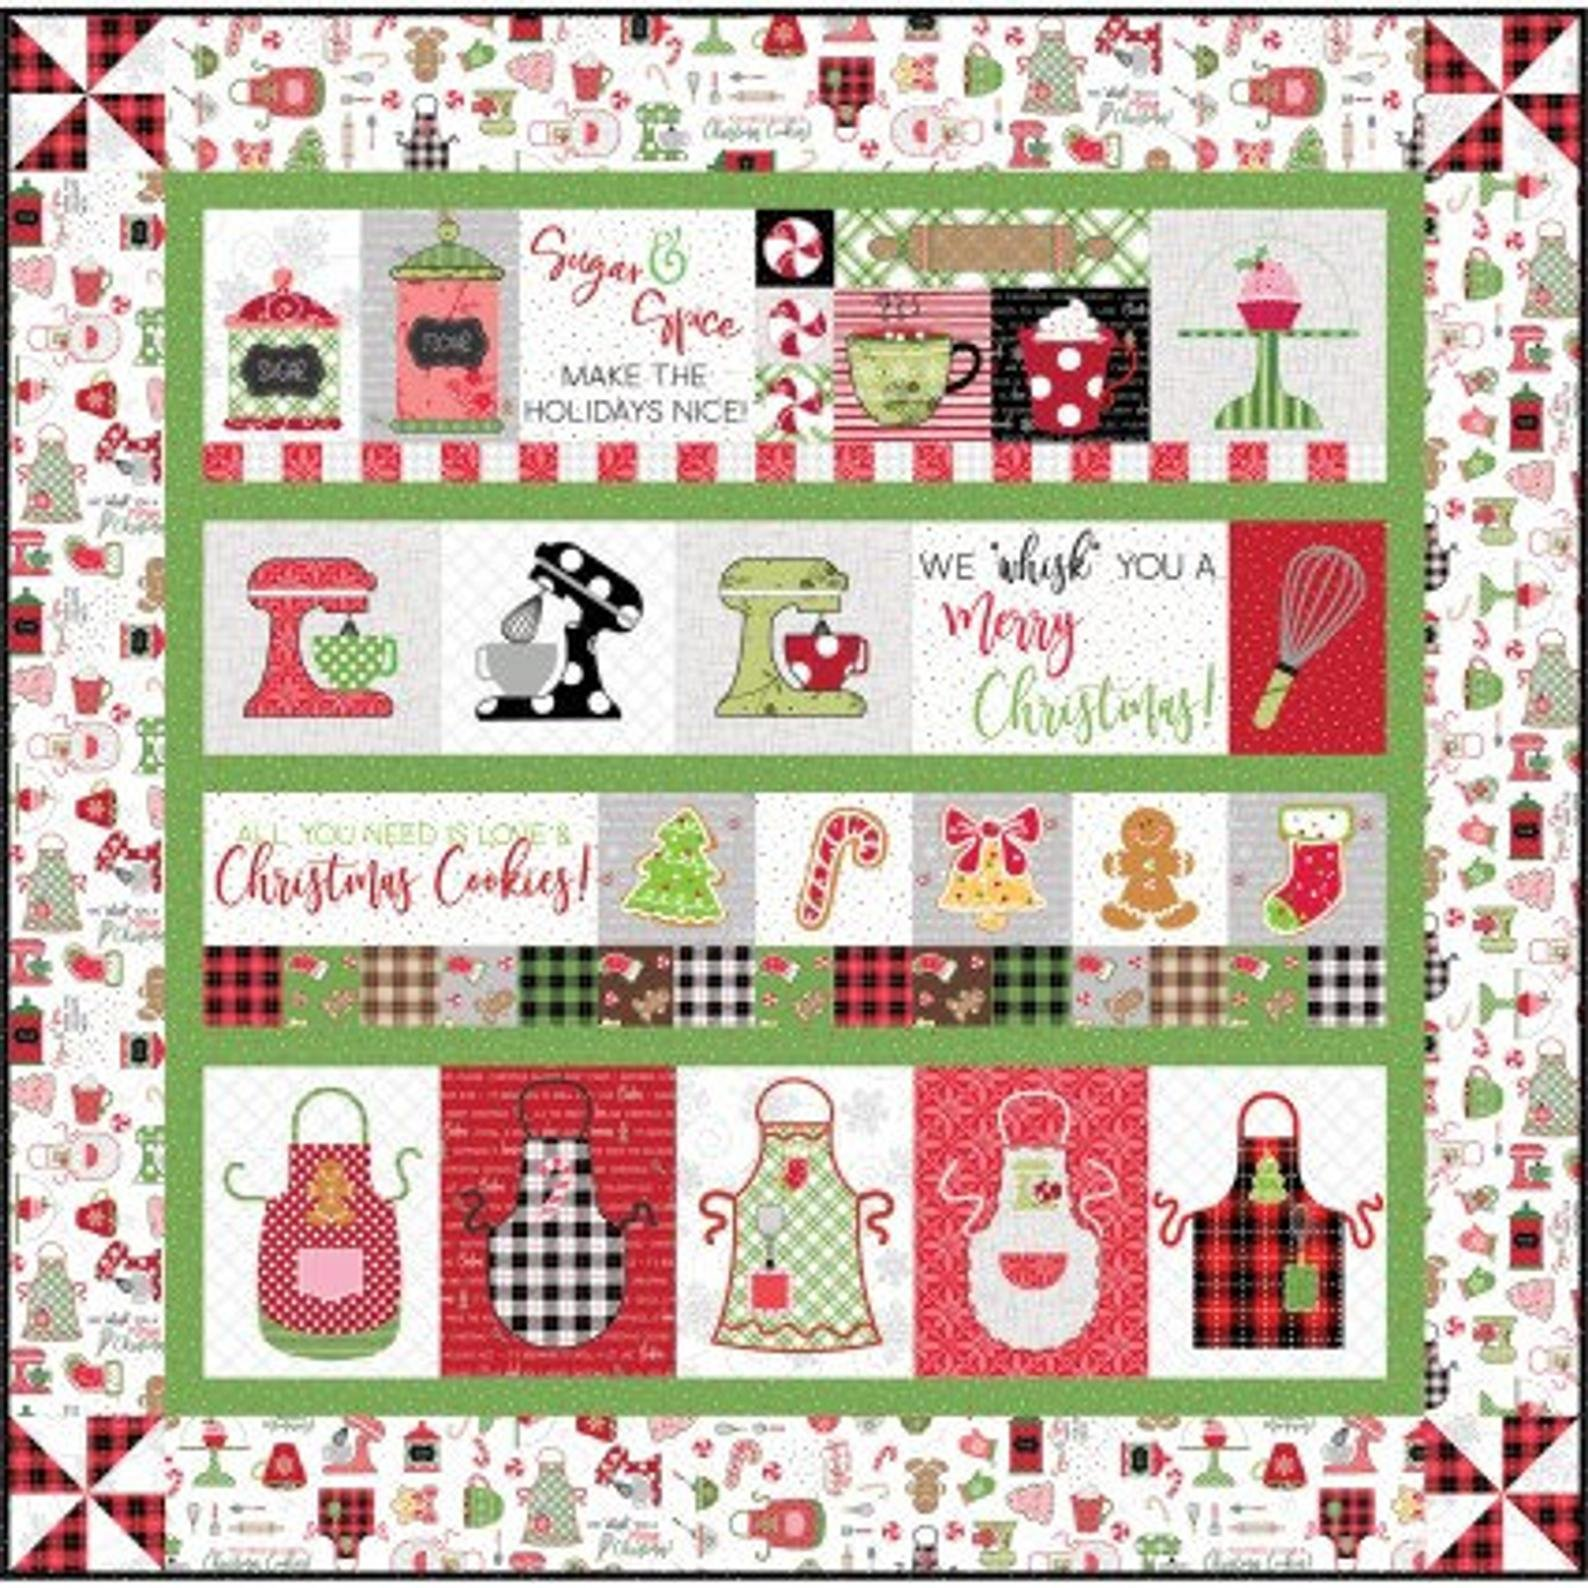 We Whisk You a Merry Christmas White Border